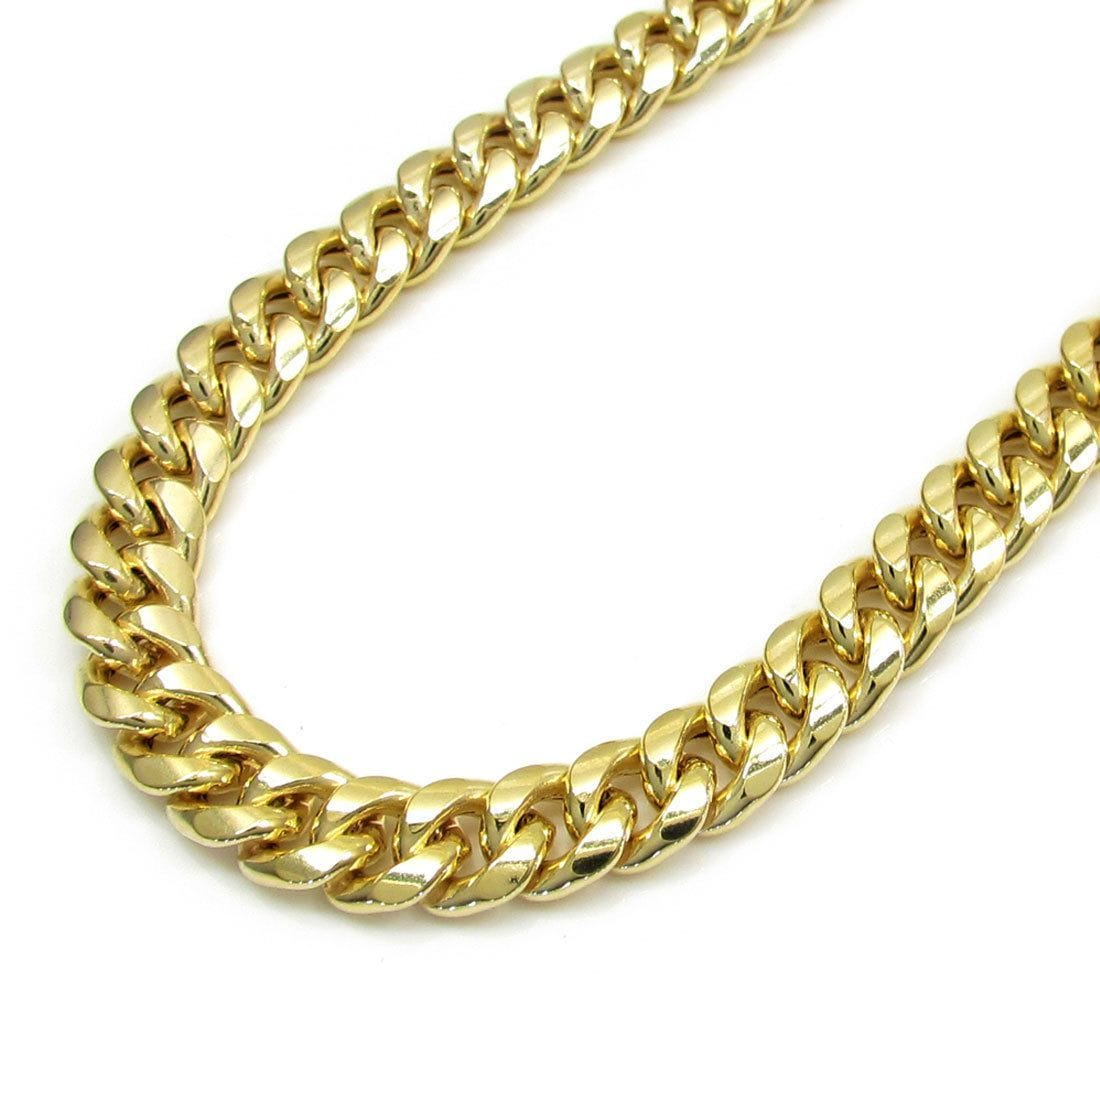 986cde9f4891c 6MM 10K YELLOW GOLD MIAMI CUBAN LINK CHAIN NECKLACE